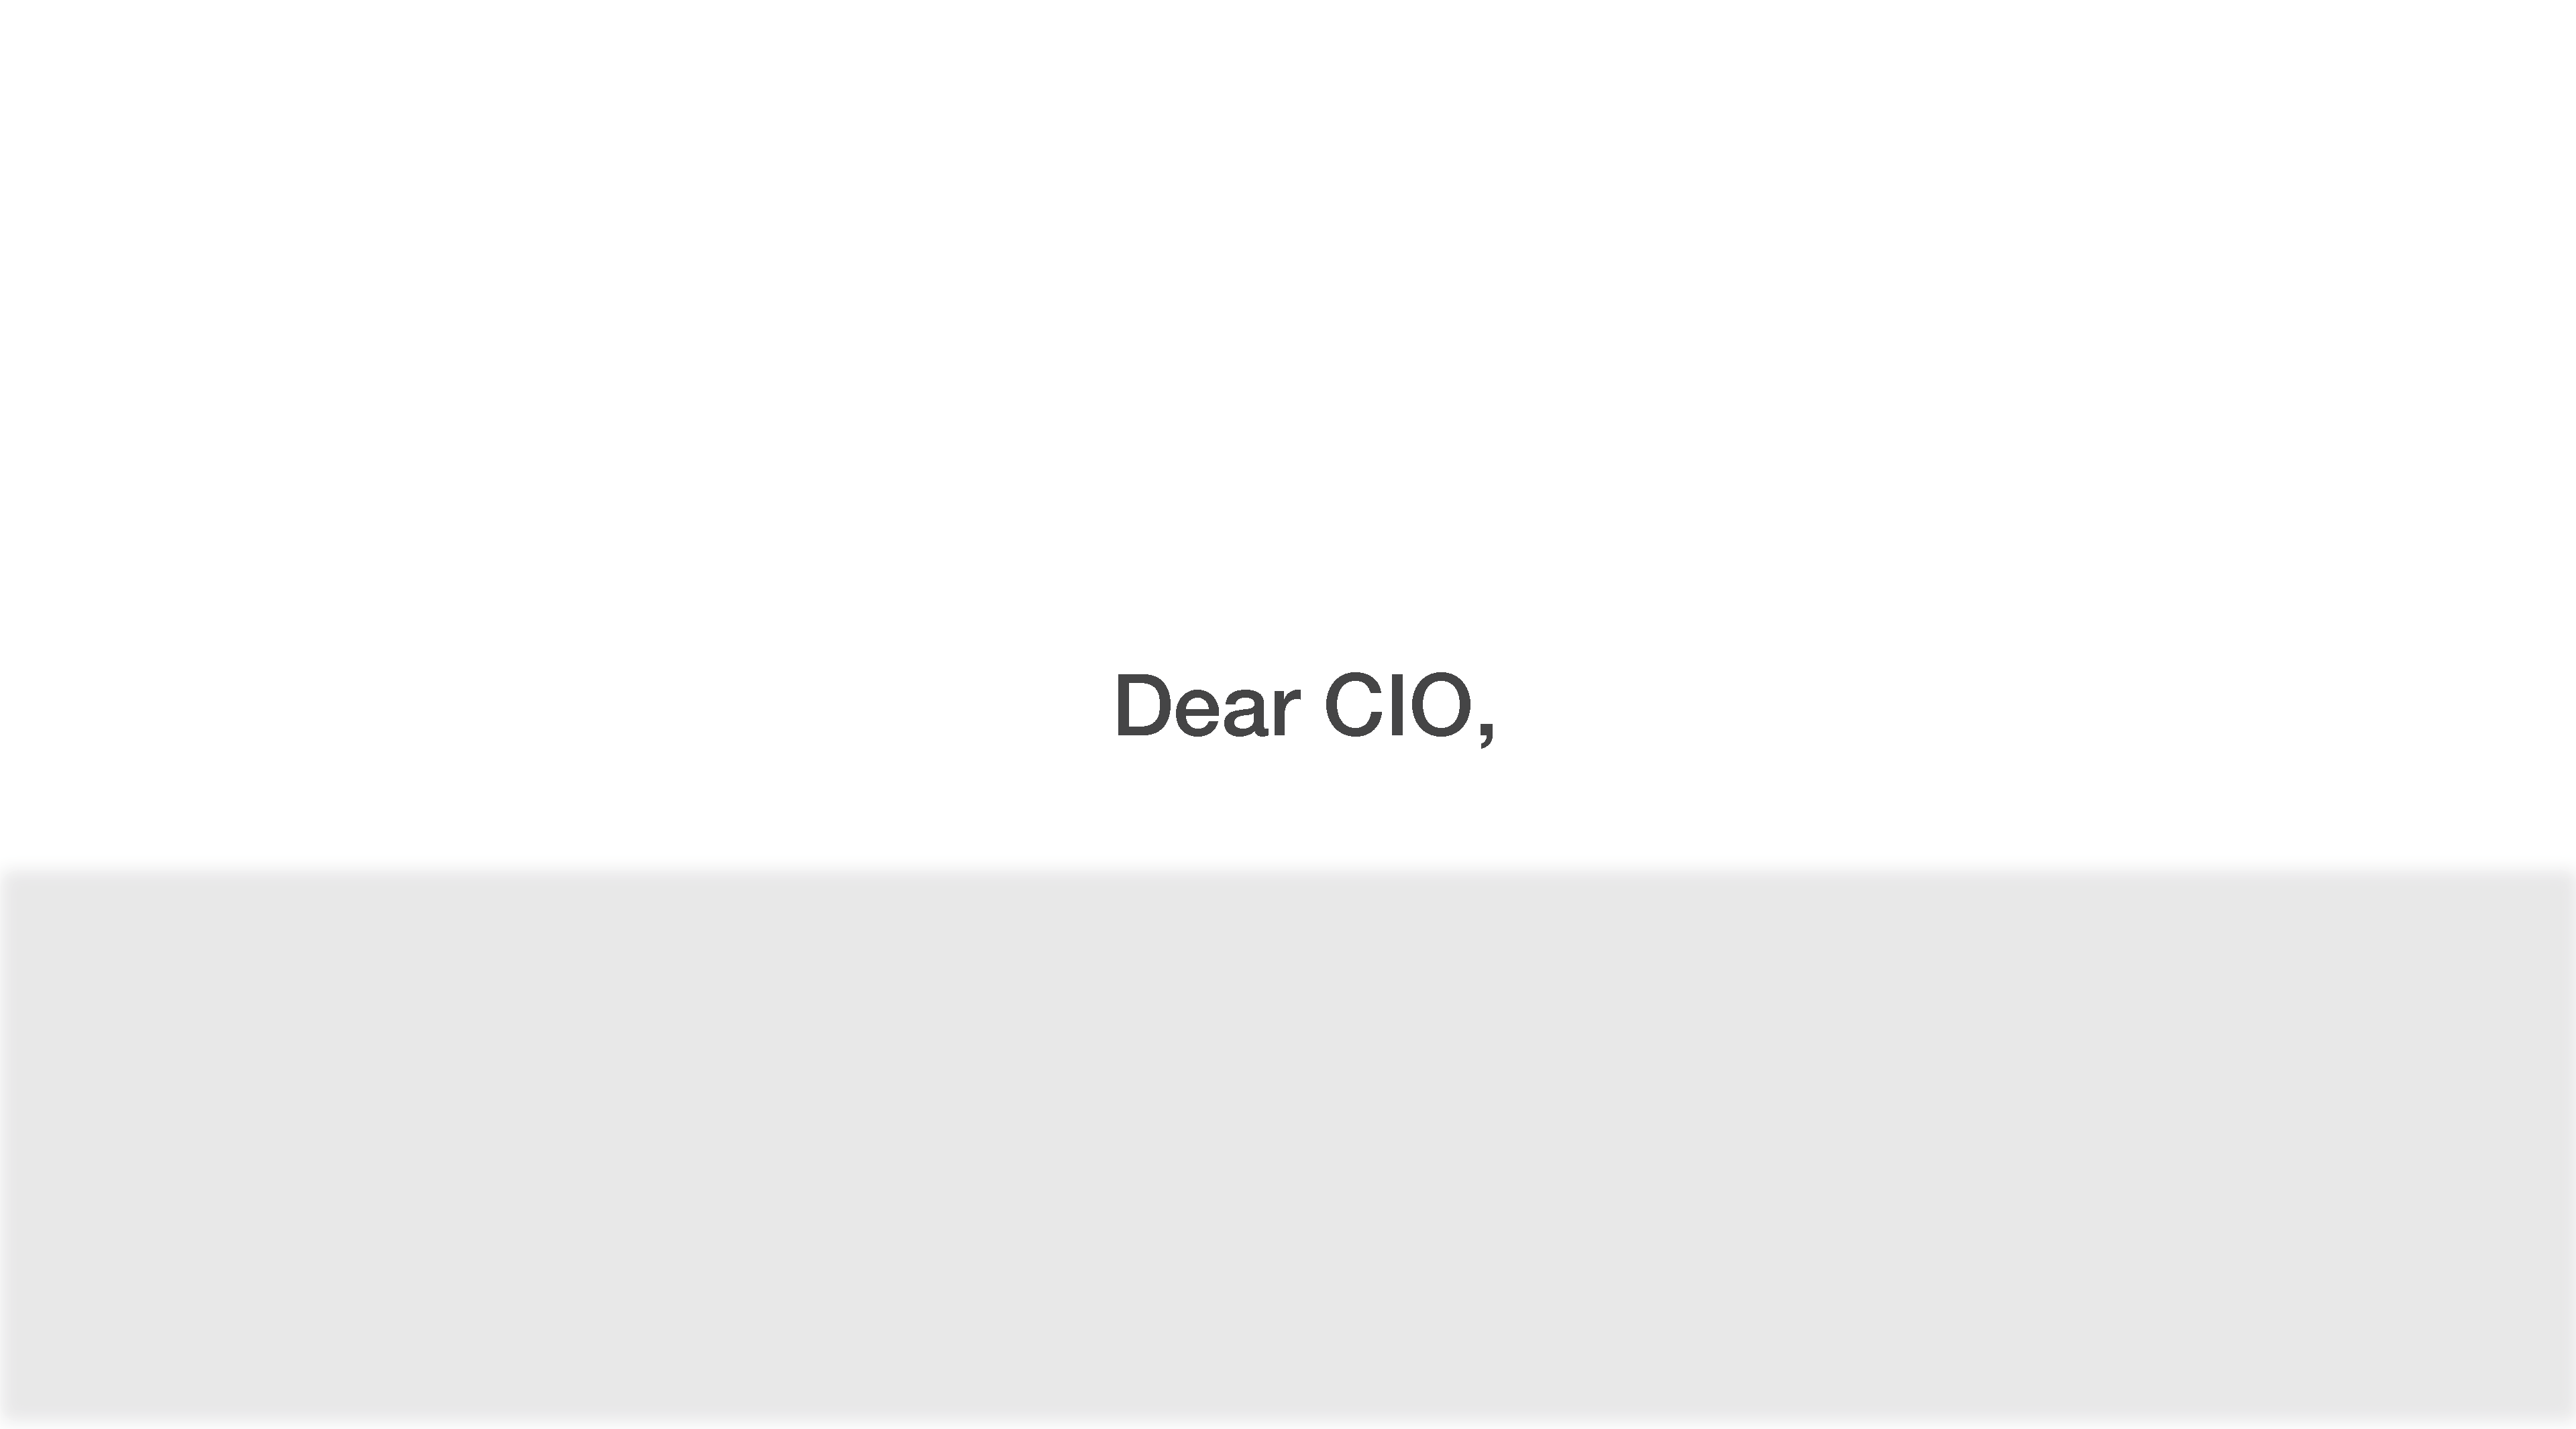 Dear CIO – if you are seeking peace of mind… I may be able to help you